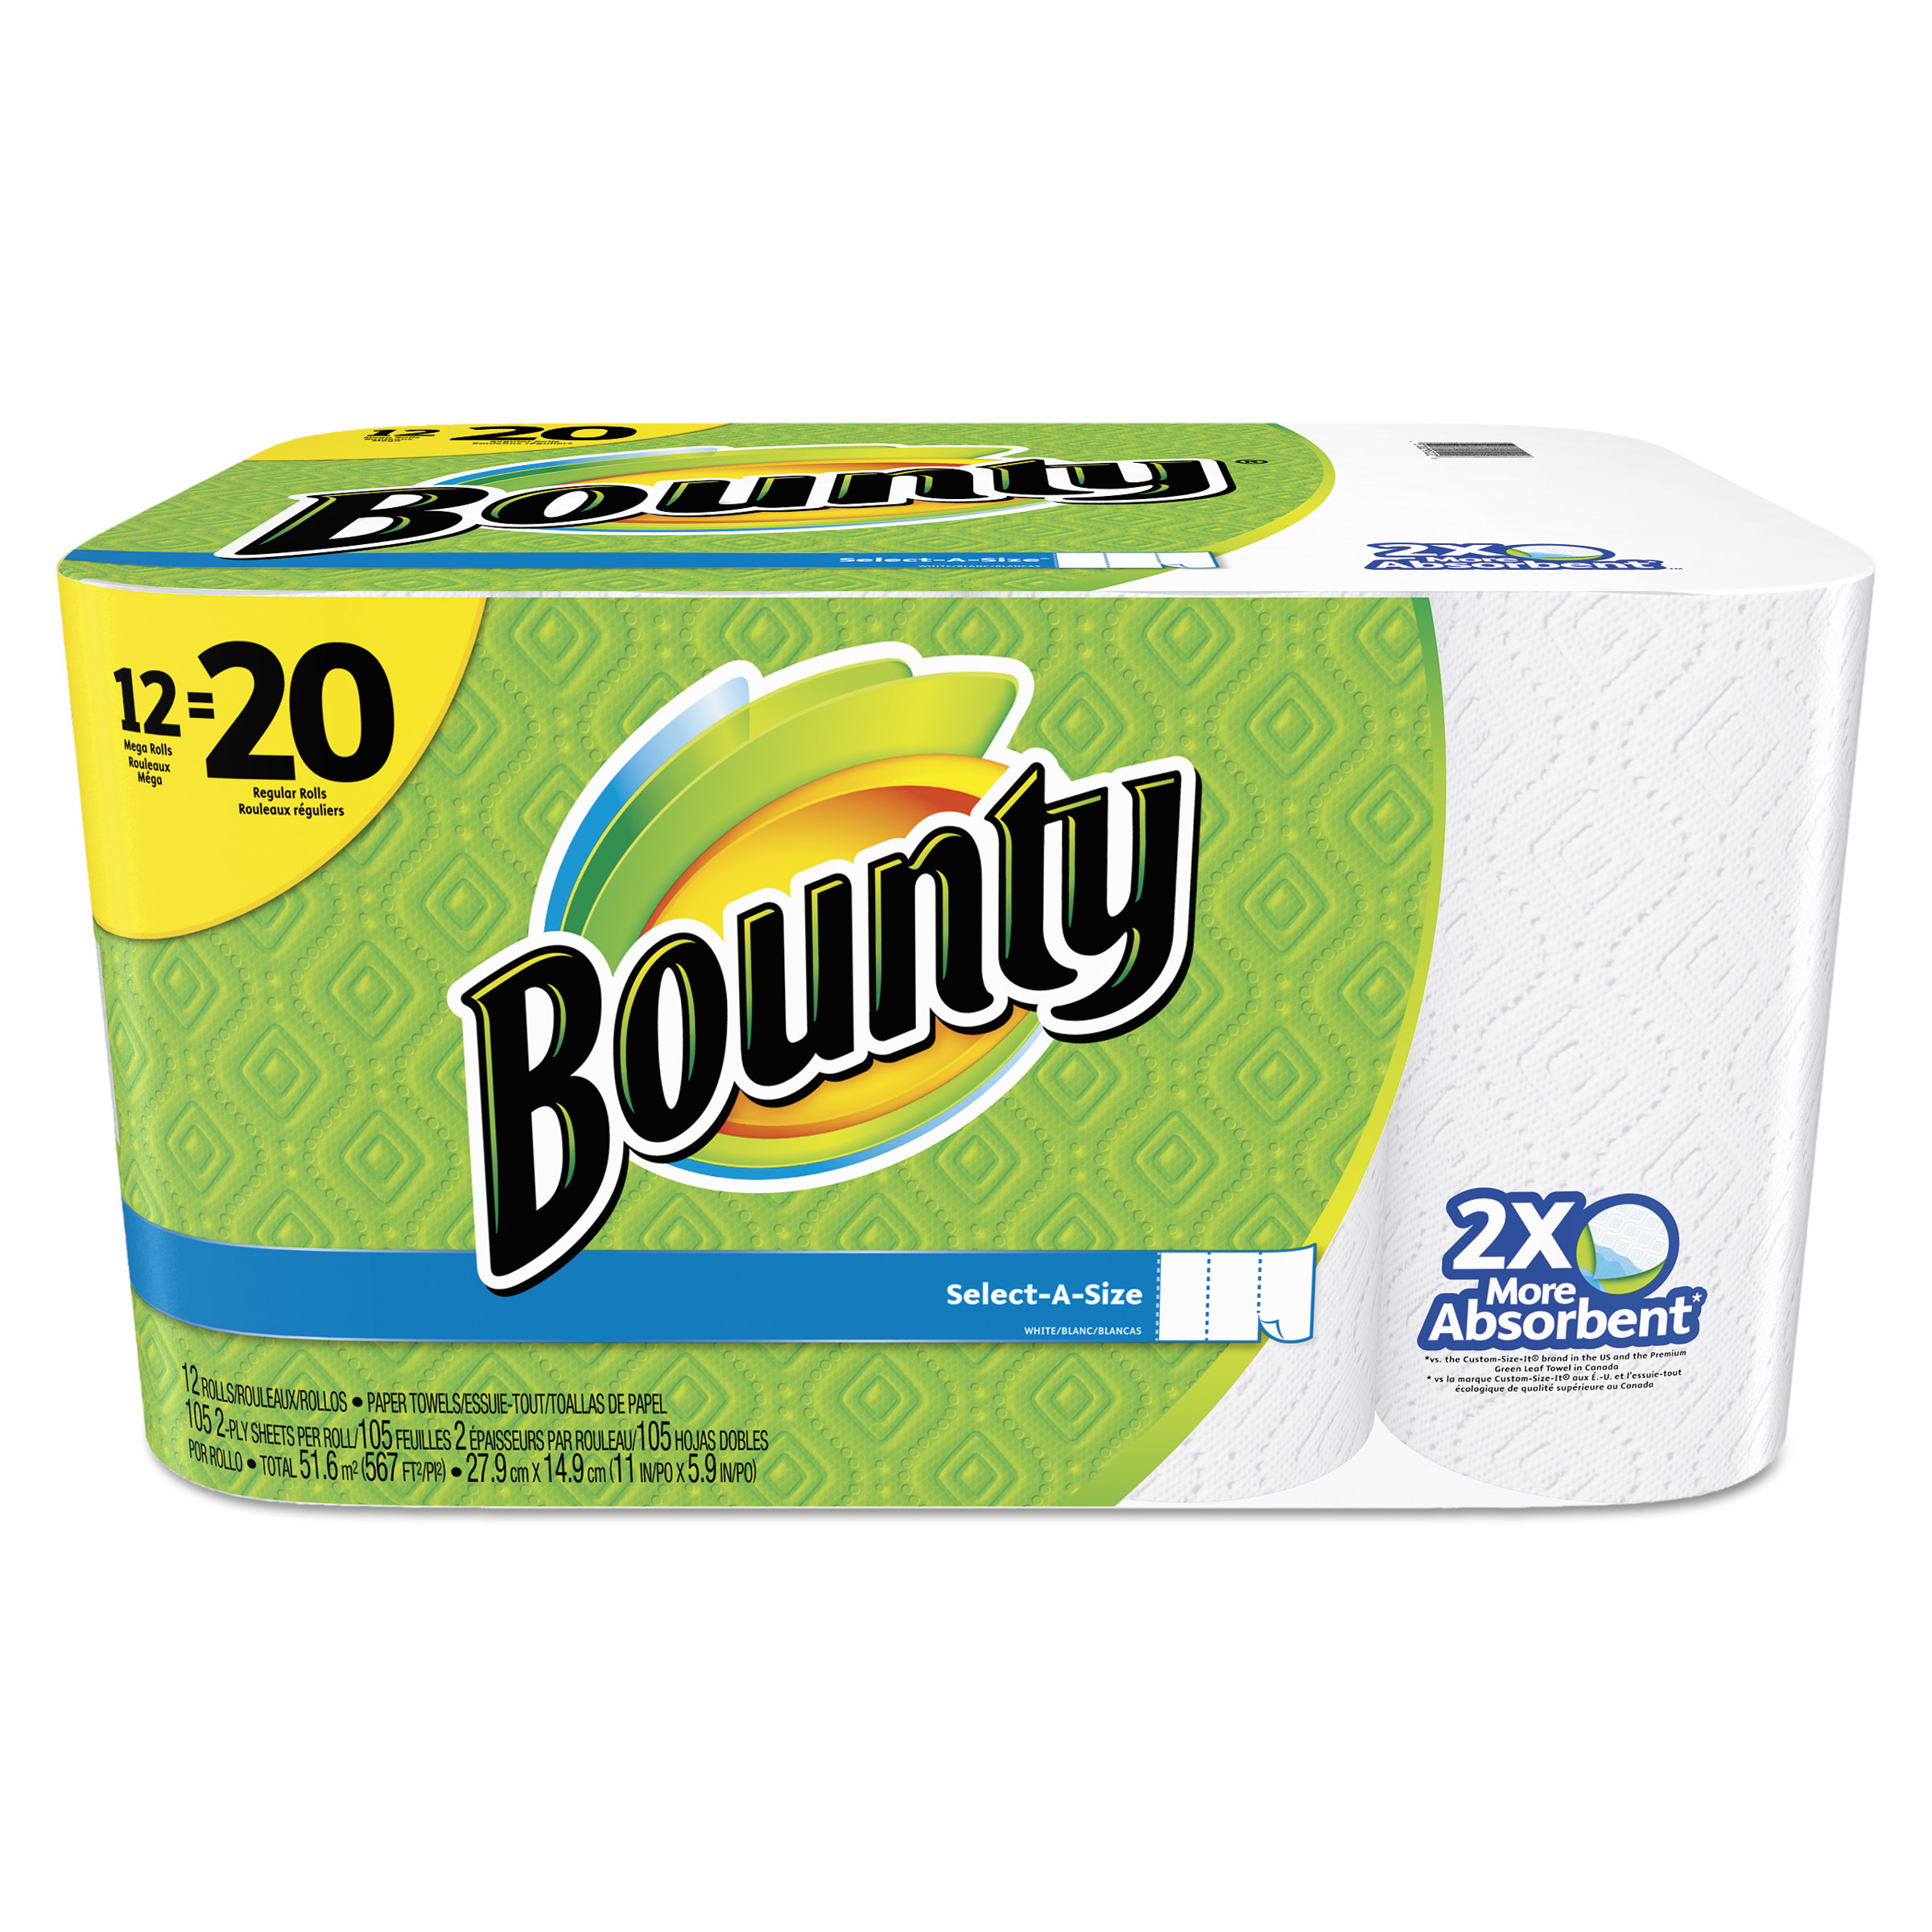 Bounty Paper Towels, Select-A-Size, 12 Mega Rolls by PROCTER & GAMBLE